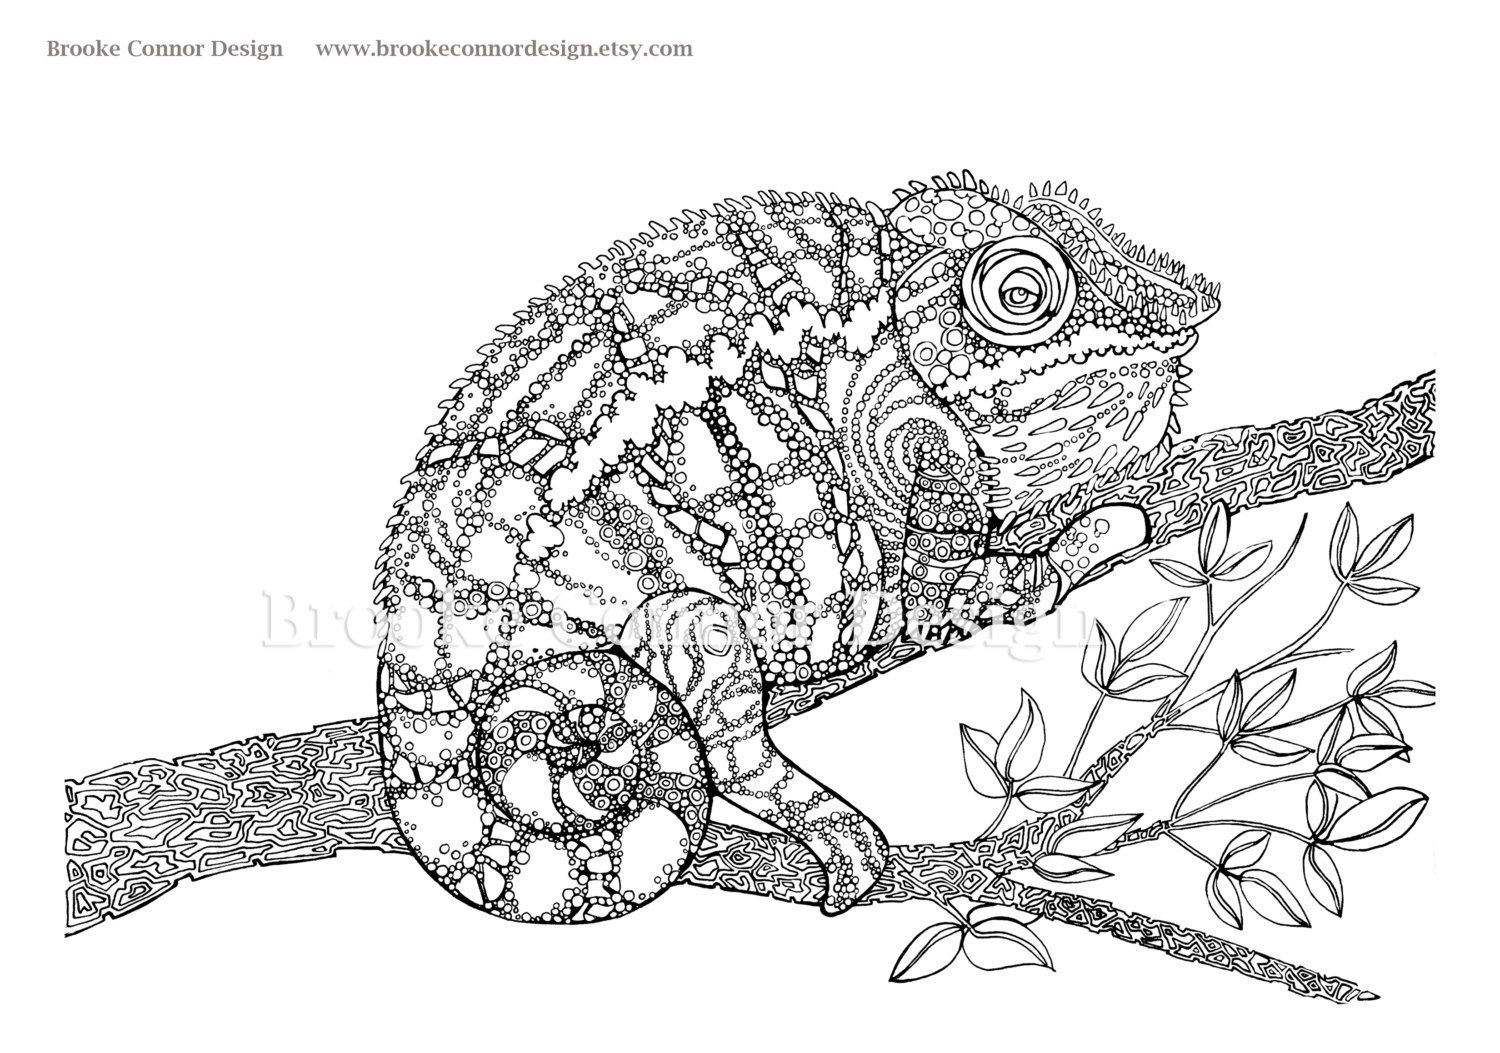 coloring pages for adults chameleon chameleon coloring book adults vector illustration stock chameleon adults pages for coloring